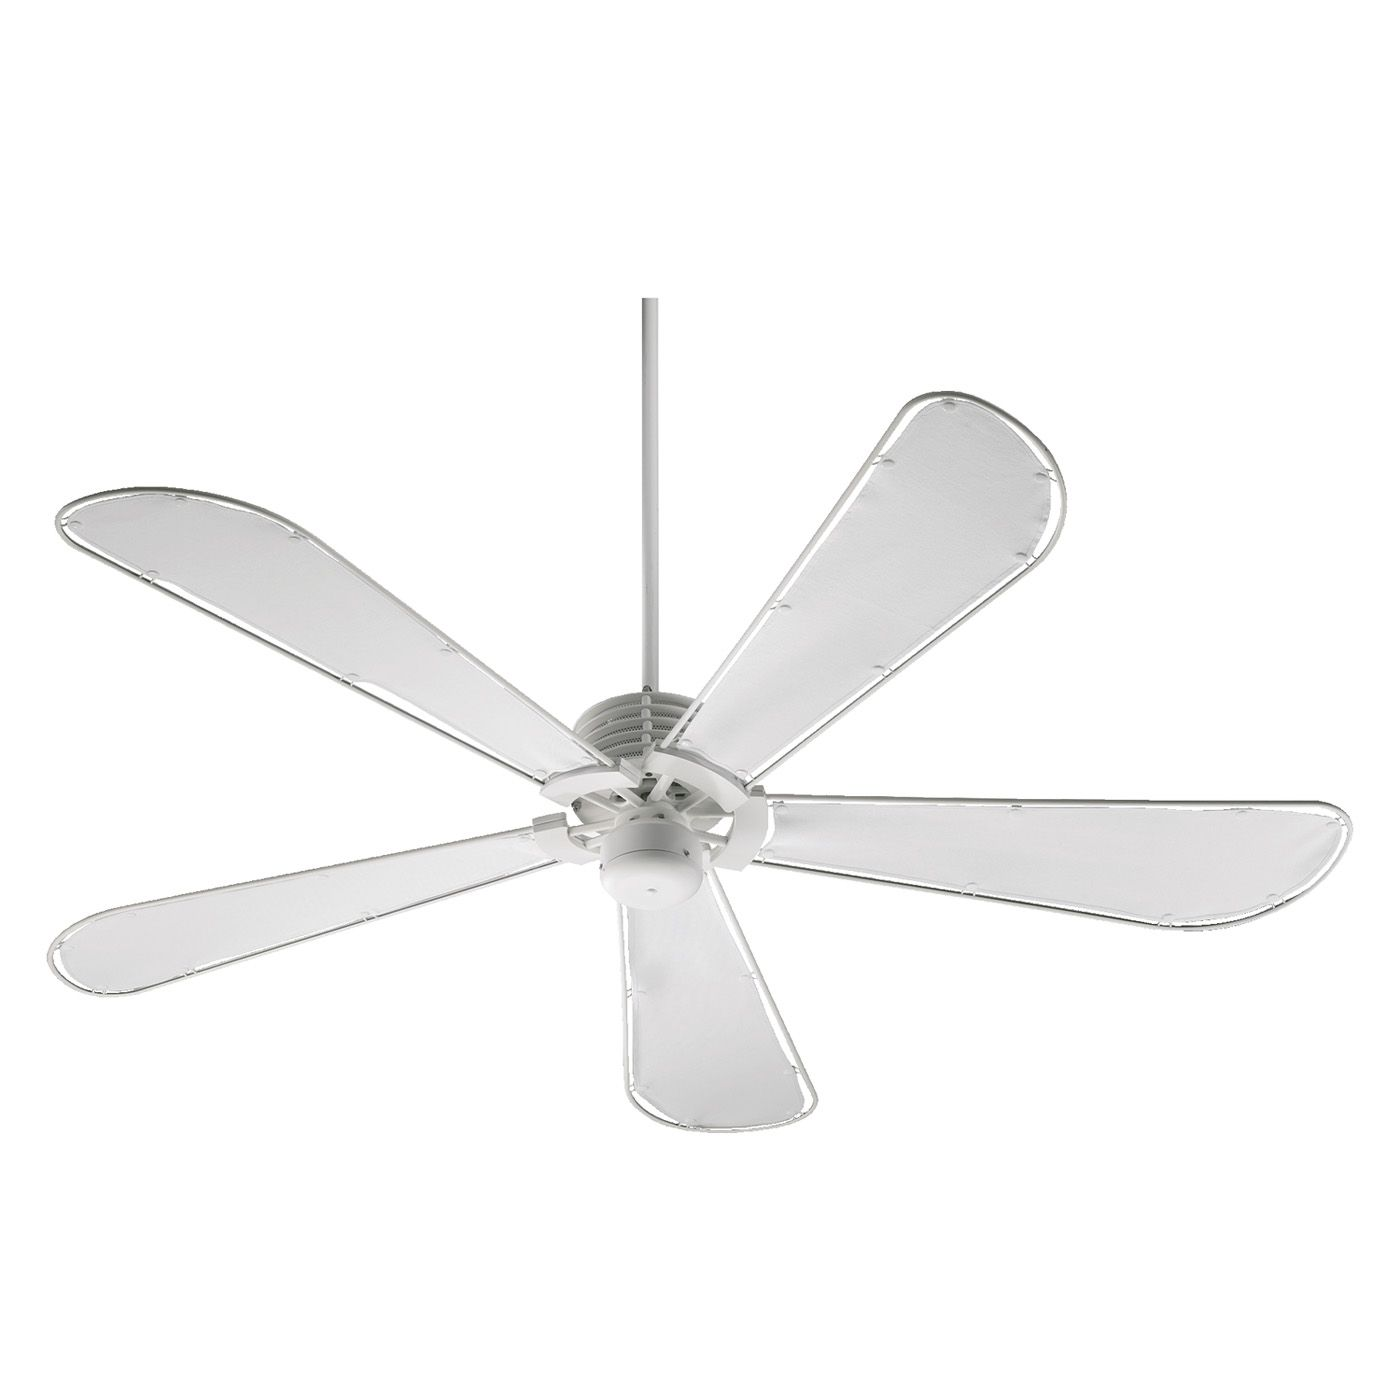 Quorum International 159605 8 60in Dragonfly Patio Ceiling Fan White Canvas Water Resistant Ceiling Fan Ceiling Fan Makeover 60 Ceiling Fan